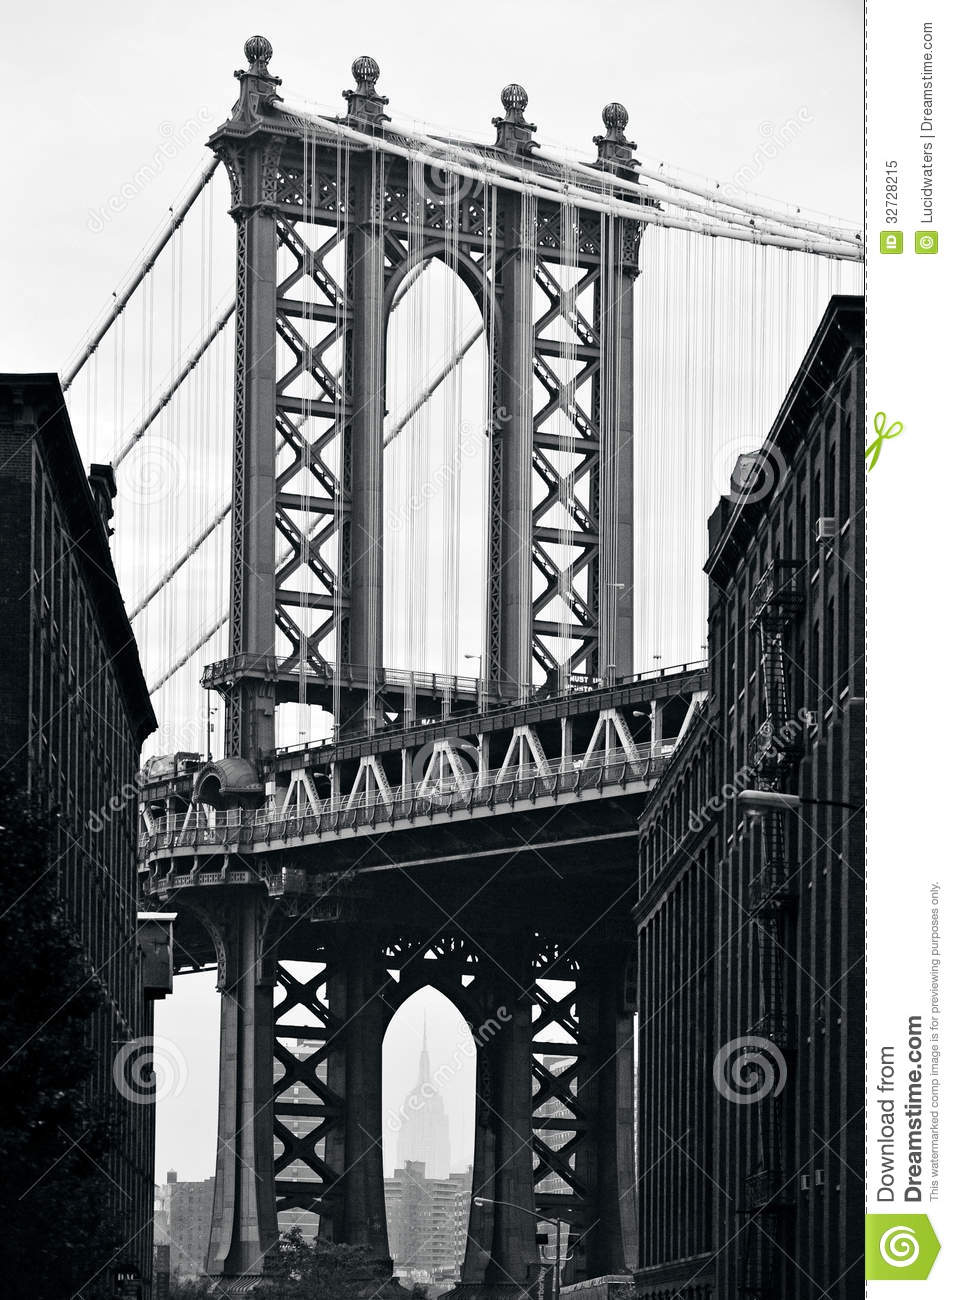 New york manhattan bridge clipart.